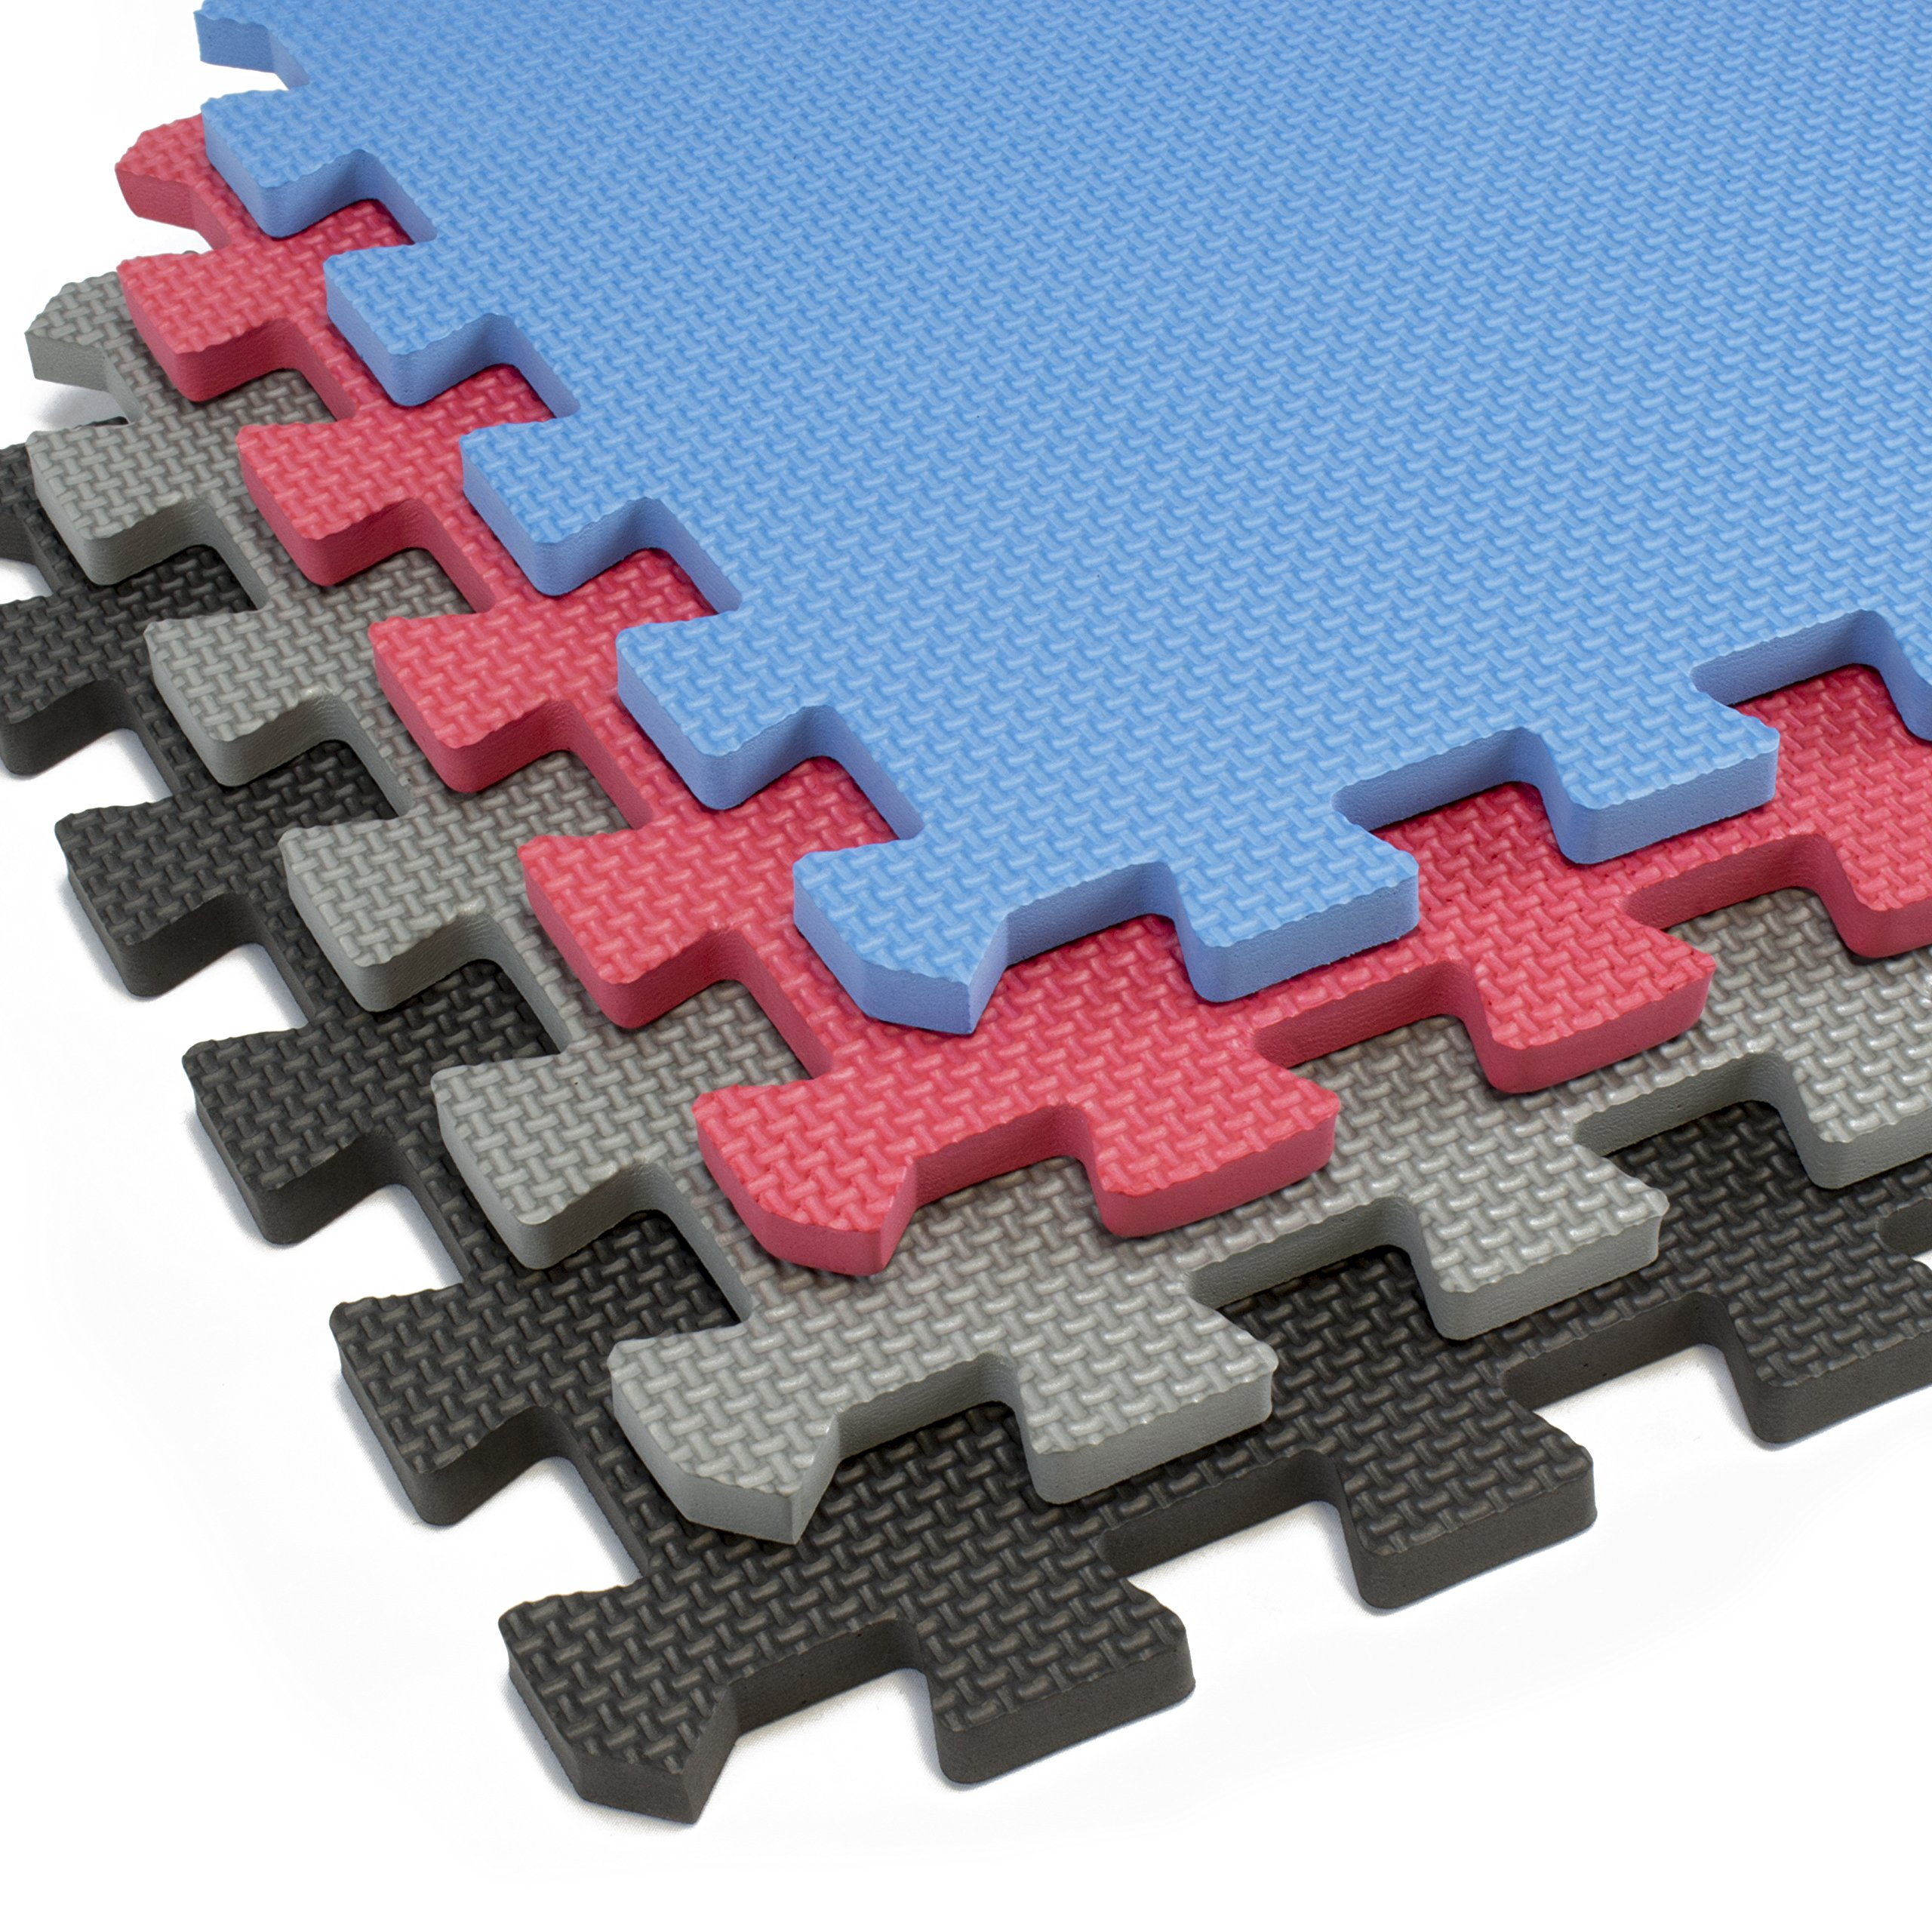 Interlocking Foam Mats With Borders | Thick EVA Exercise Flooring | Soft & Non Toxic Kids Play Tiles | Puzzle for Children & Baby Room | Yoga Squares Babies Garage Gym Fitness Board (Black) by Alpine Neighbor